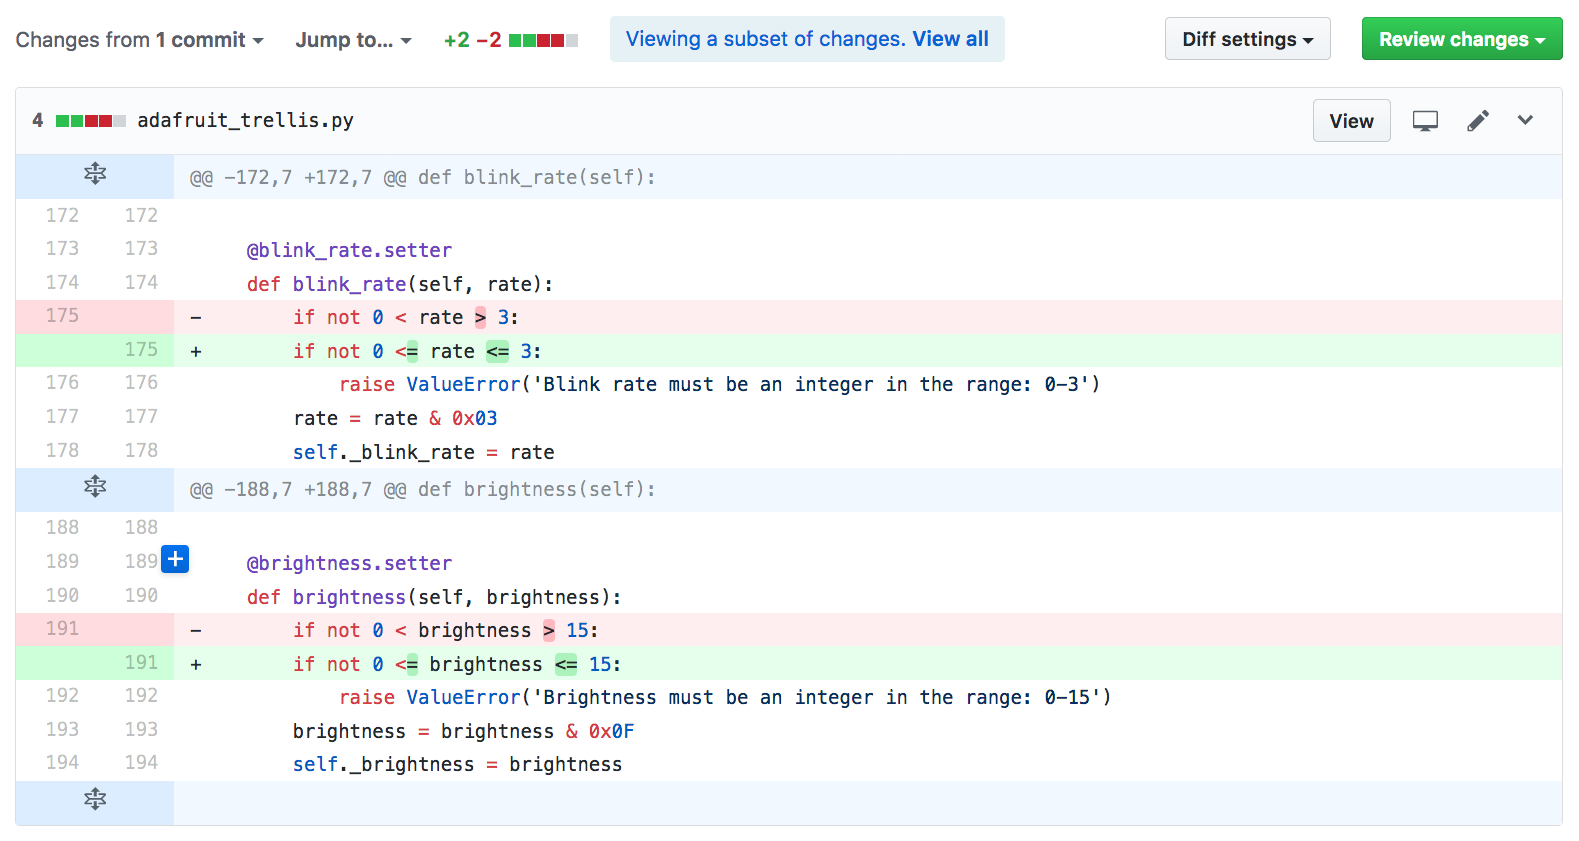 circuitpython_GitHubReviewViewChangesFromChangeRequest.png